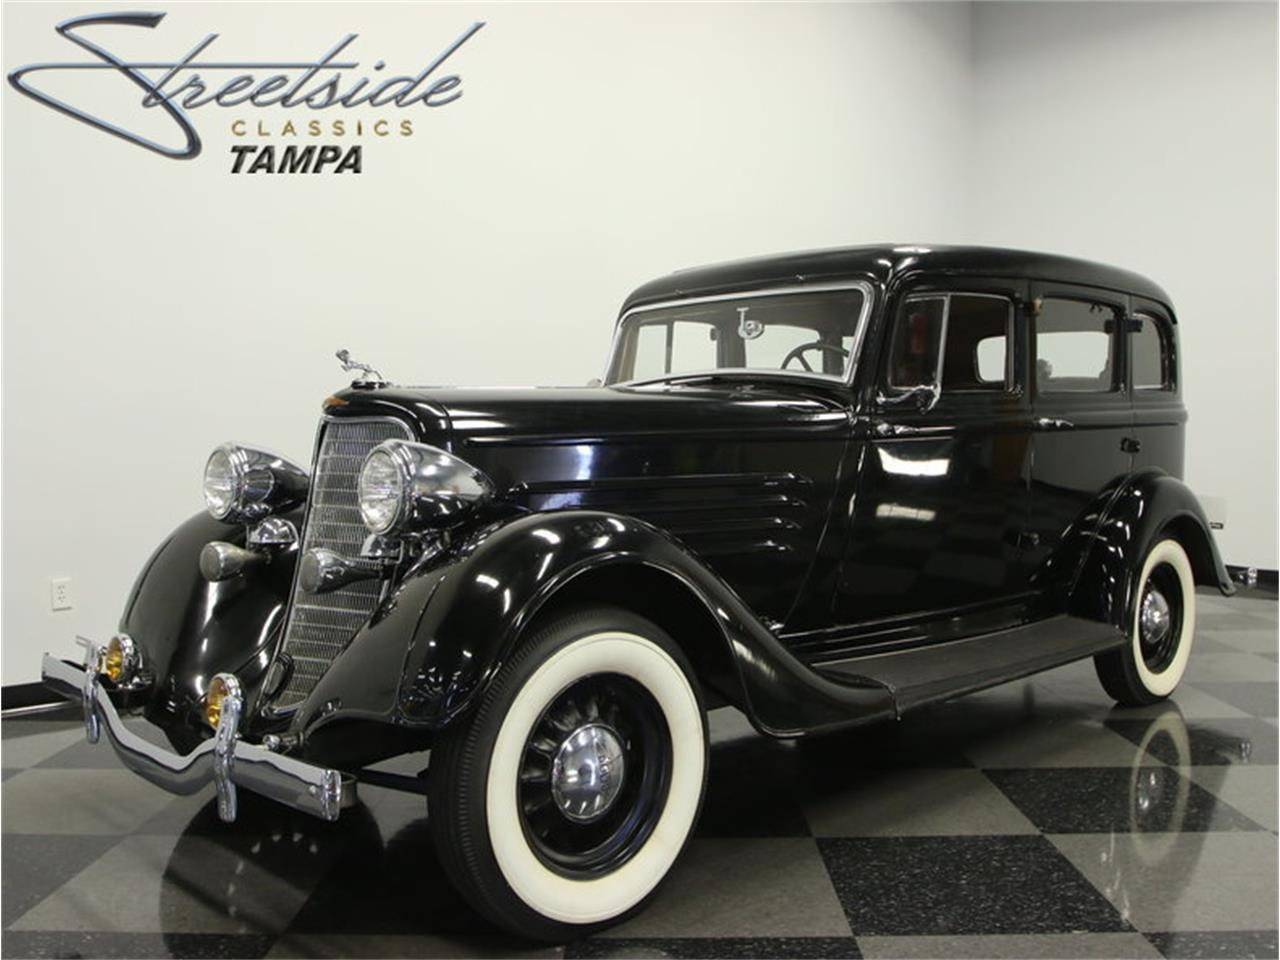 For Sale: 1934 Dodge Deluxe Six in Lutz, Florida